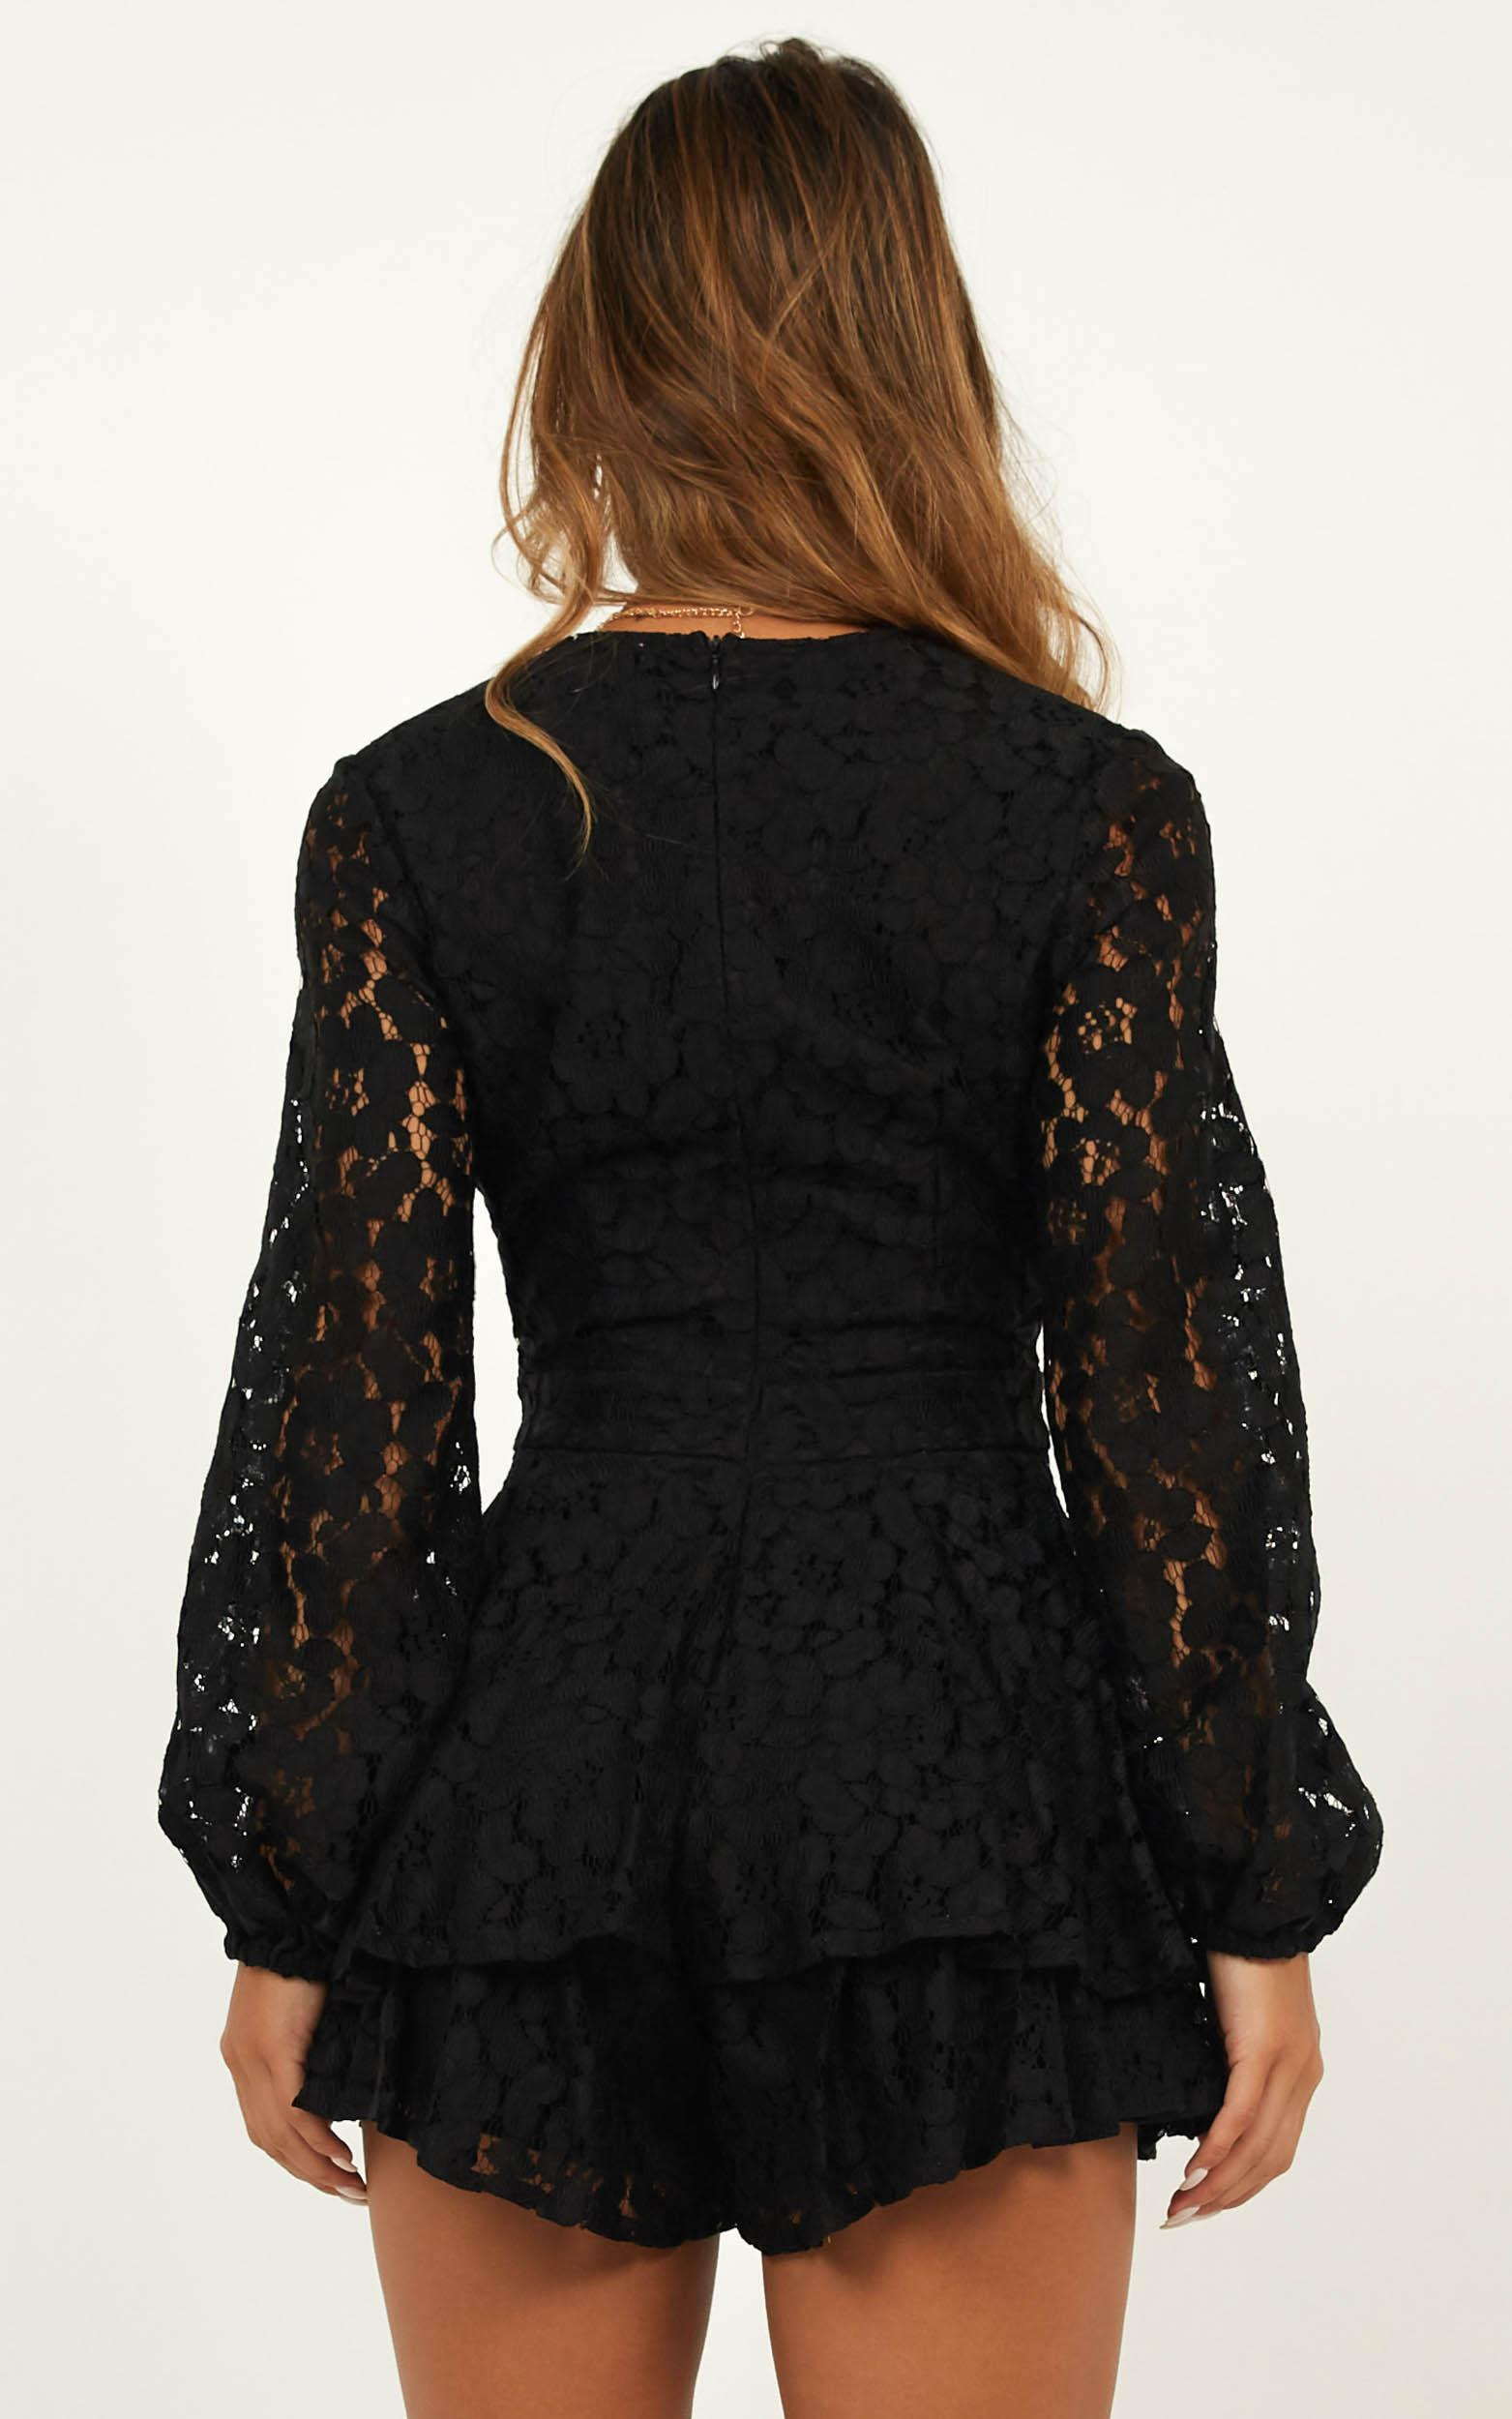 Communal Love Playsuit in black lace - 20 (XXXXL), Black, hi-res image number null